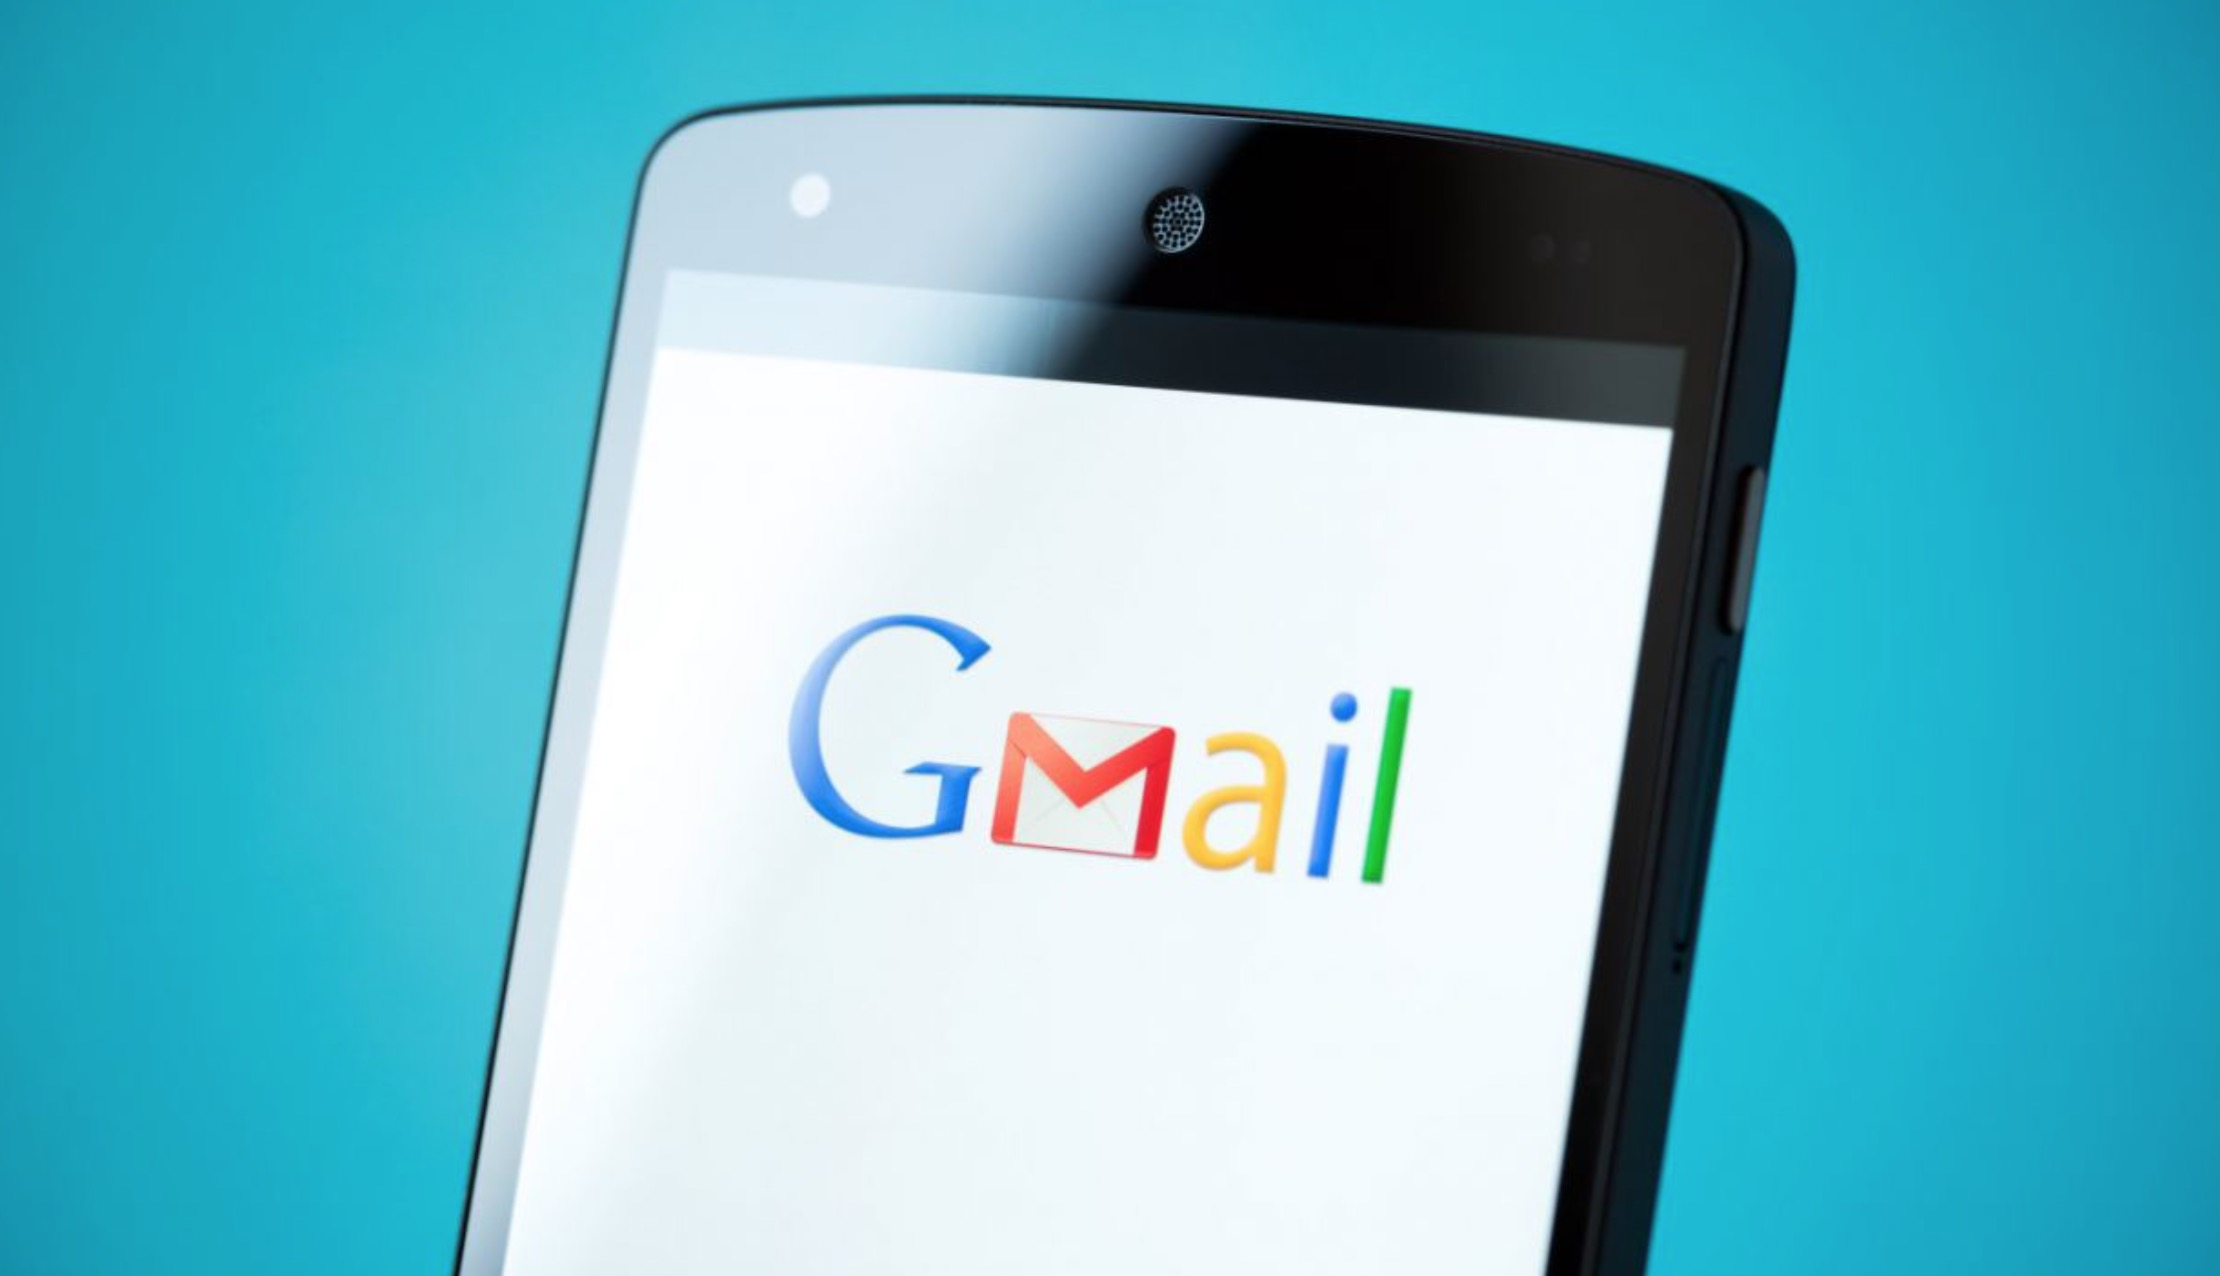 Recupero password Gmail: come fare se dimenticata